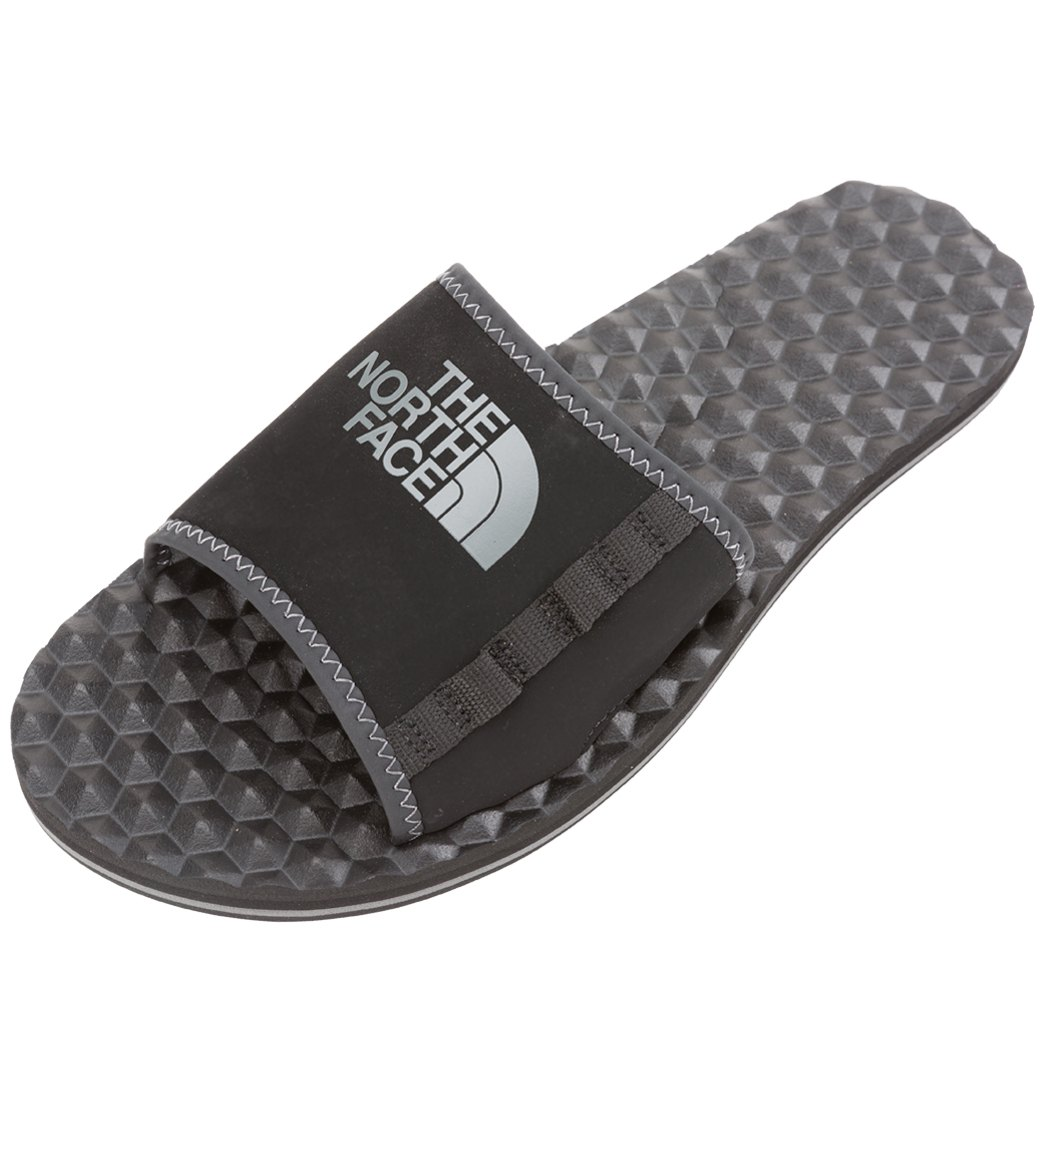 fe2f0f533 The North Face Men's Base Camp Plus Slide Sandals